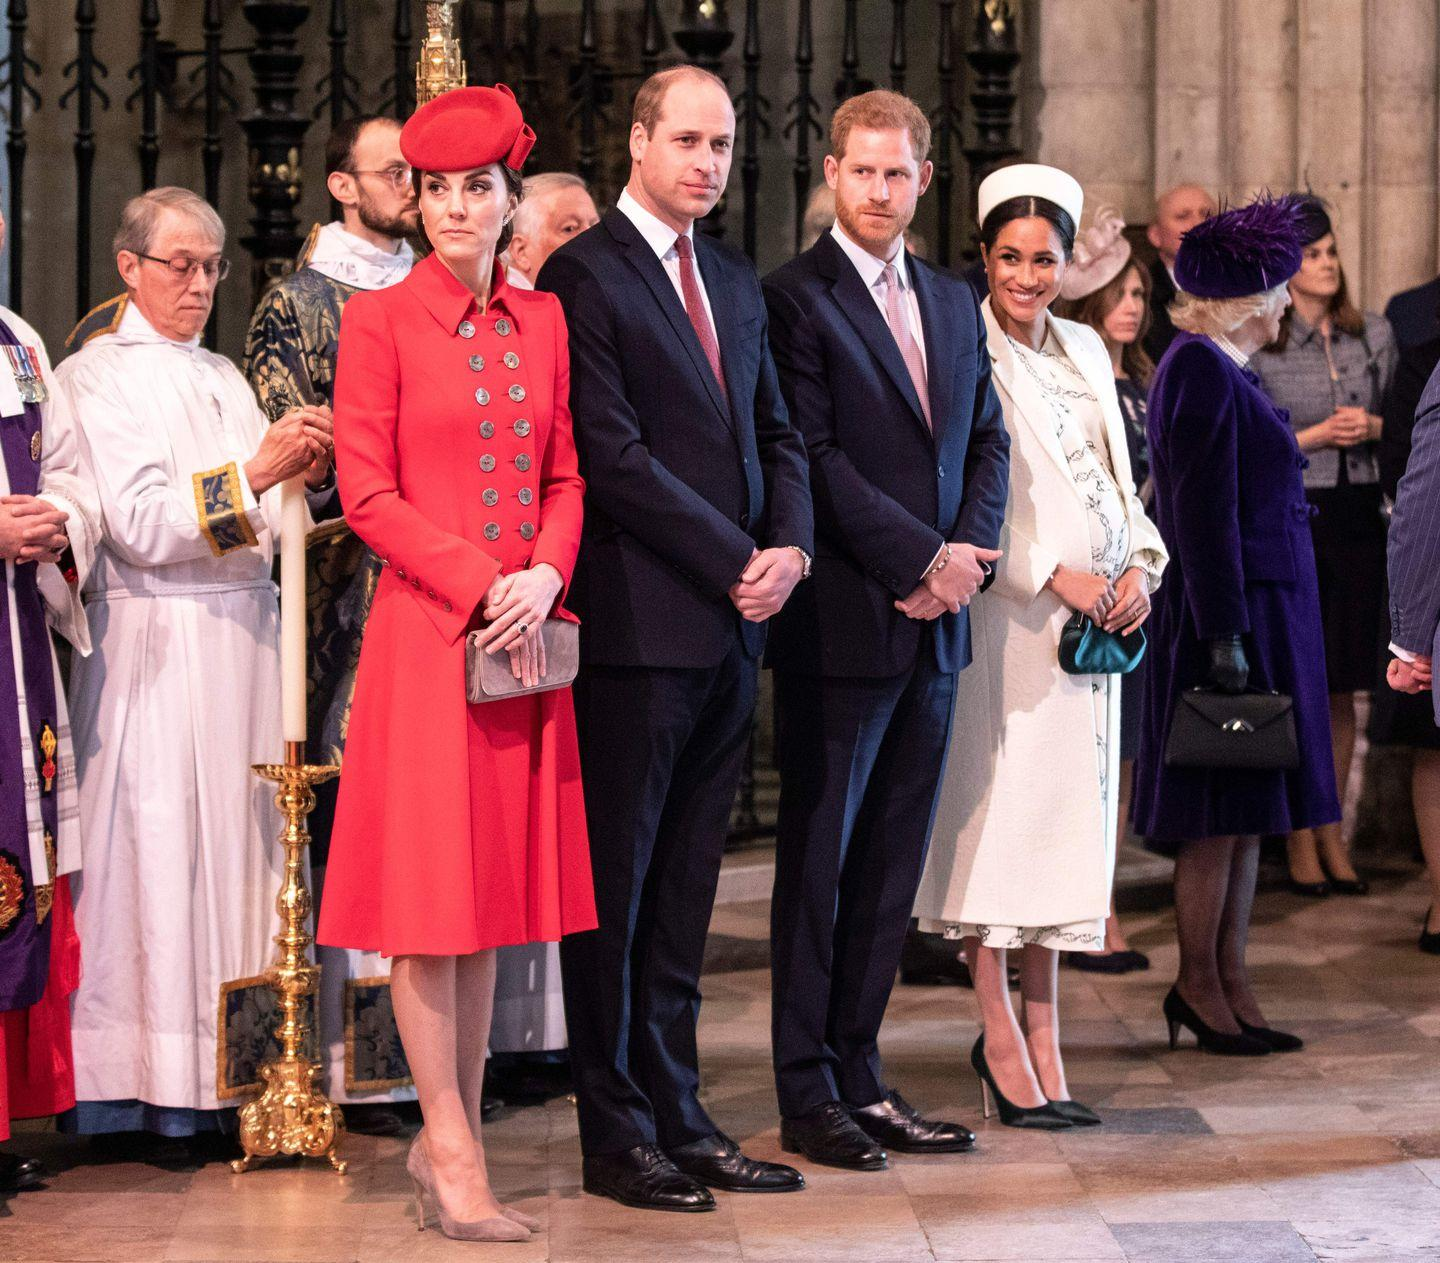 66dbcfdf Kate Middleton and Prince William's Secret Visit to See Meghan Markle